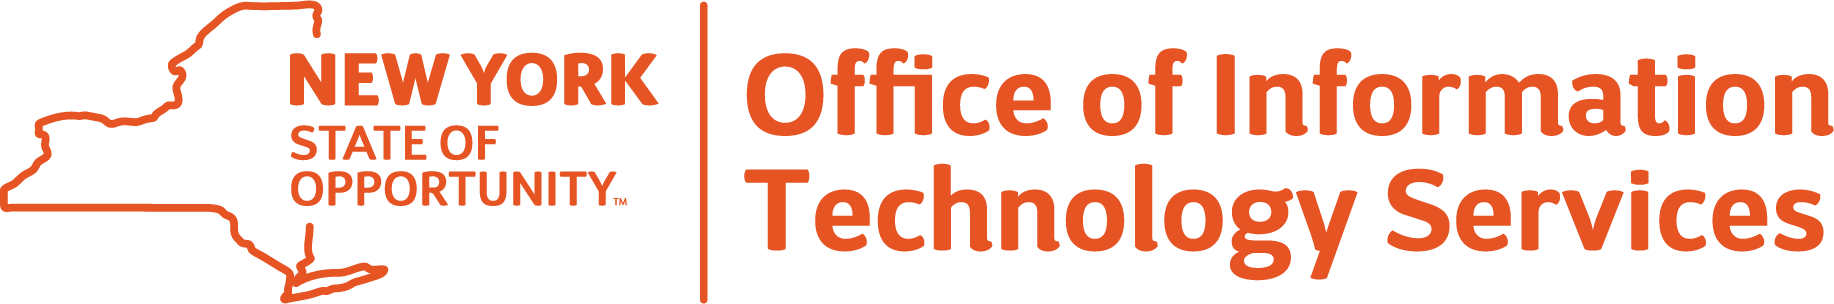 New York, State of Opportunity  | Office of Information Technology Services